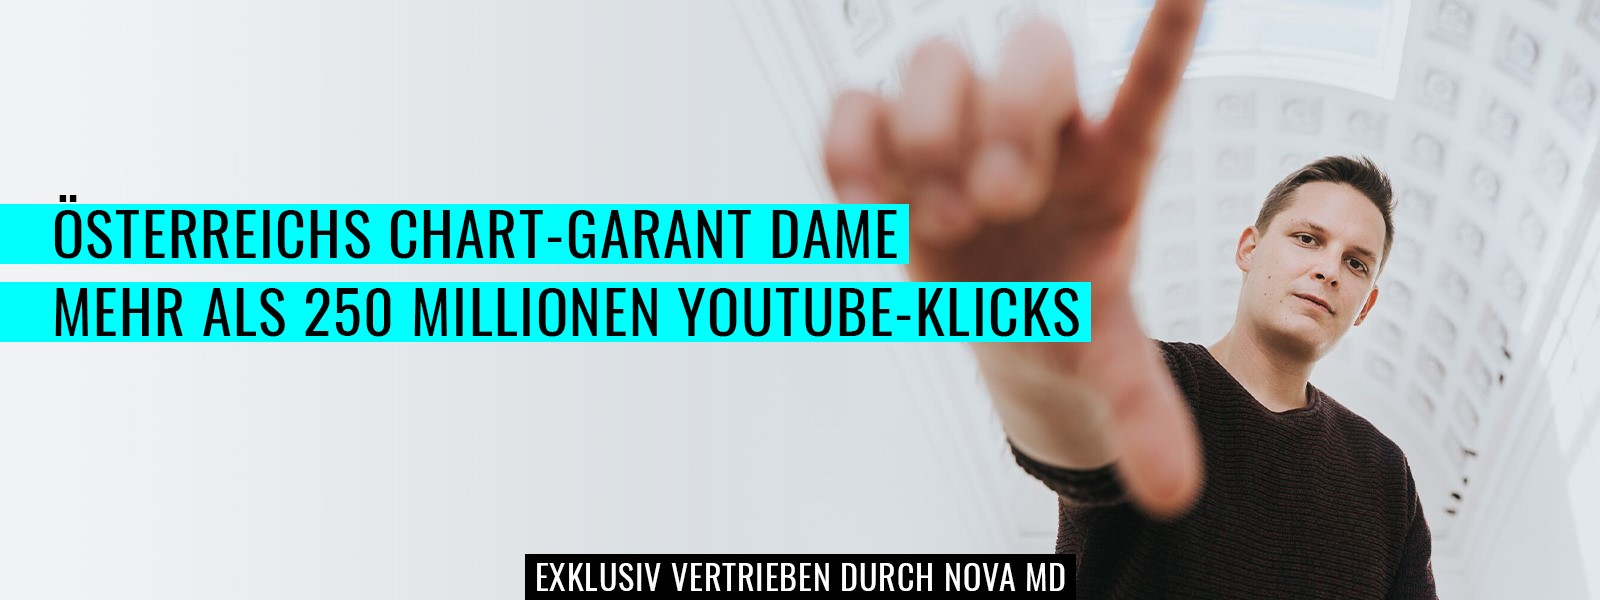 Dame hat 250 Millionen Views bei YouTube